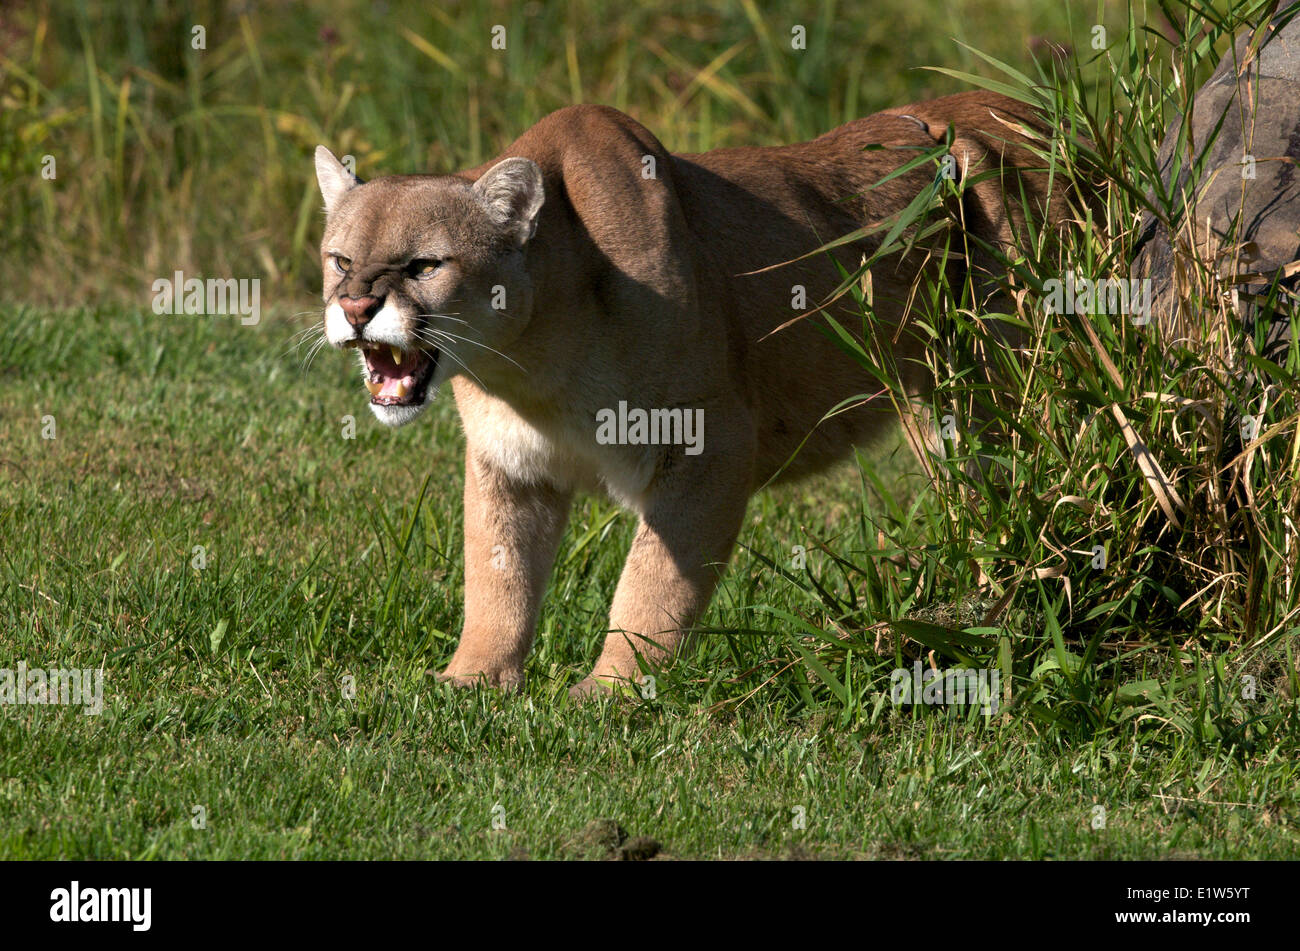 cougar or mountain lion, Puma concolor, snarling, North America. - Stock Image